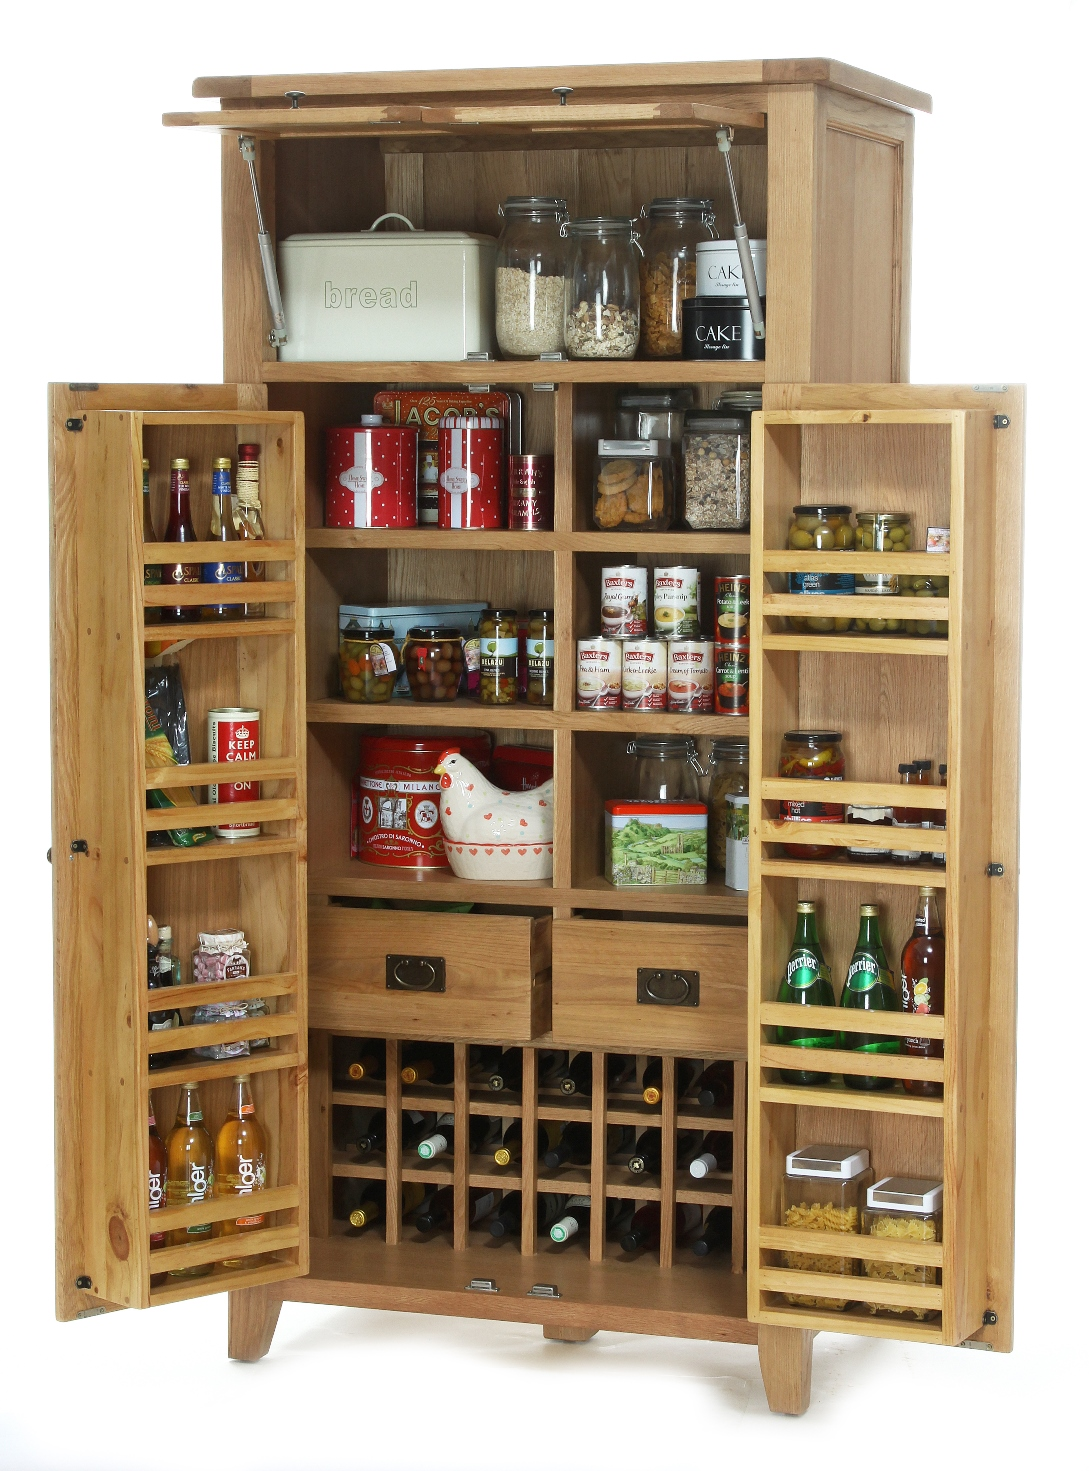 SMALL KITCHEN LARDER OPEN  w 100 x d 66 x h 200 cm  € 1,780 ( 40% off furniture in stock and 30% off furniture to be ordered until 21st Aug!! )  Product Code: NB097